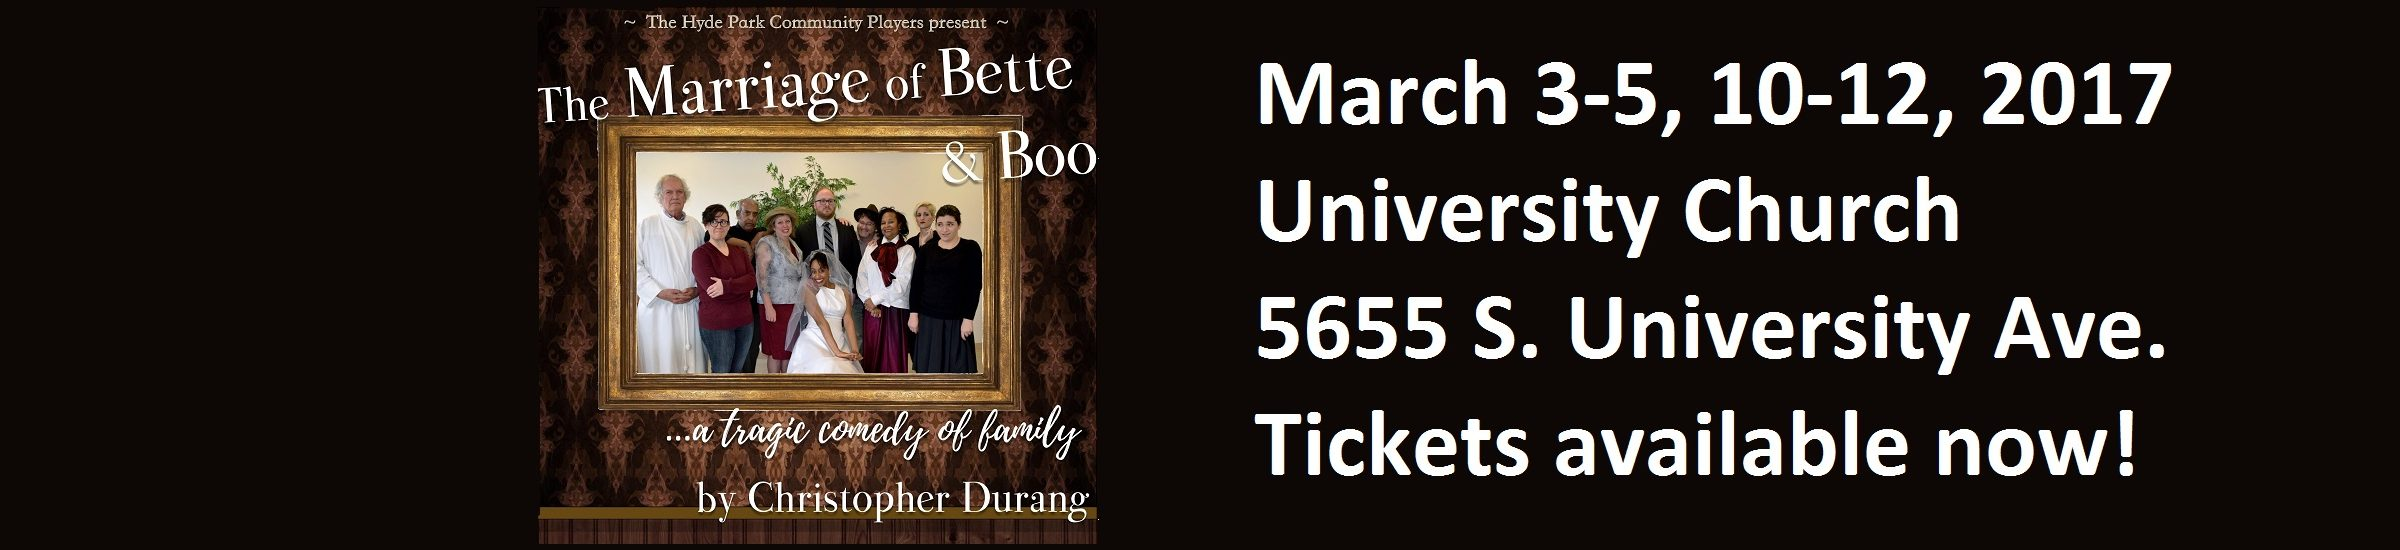 """""""The Marriage of Bette and Boo"""" by Christopher Durang (March 3-12, 2017)"""